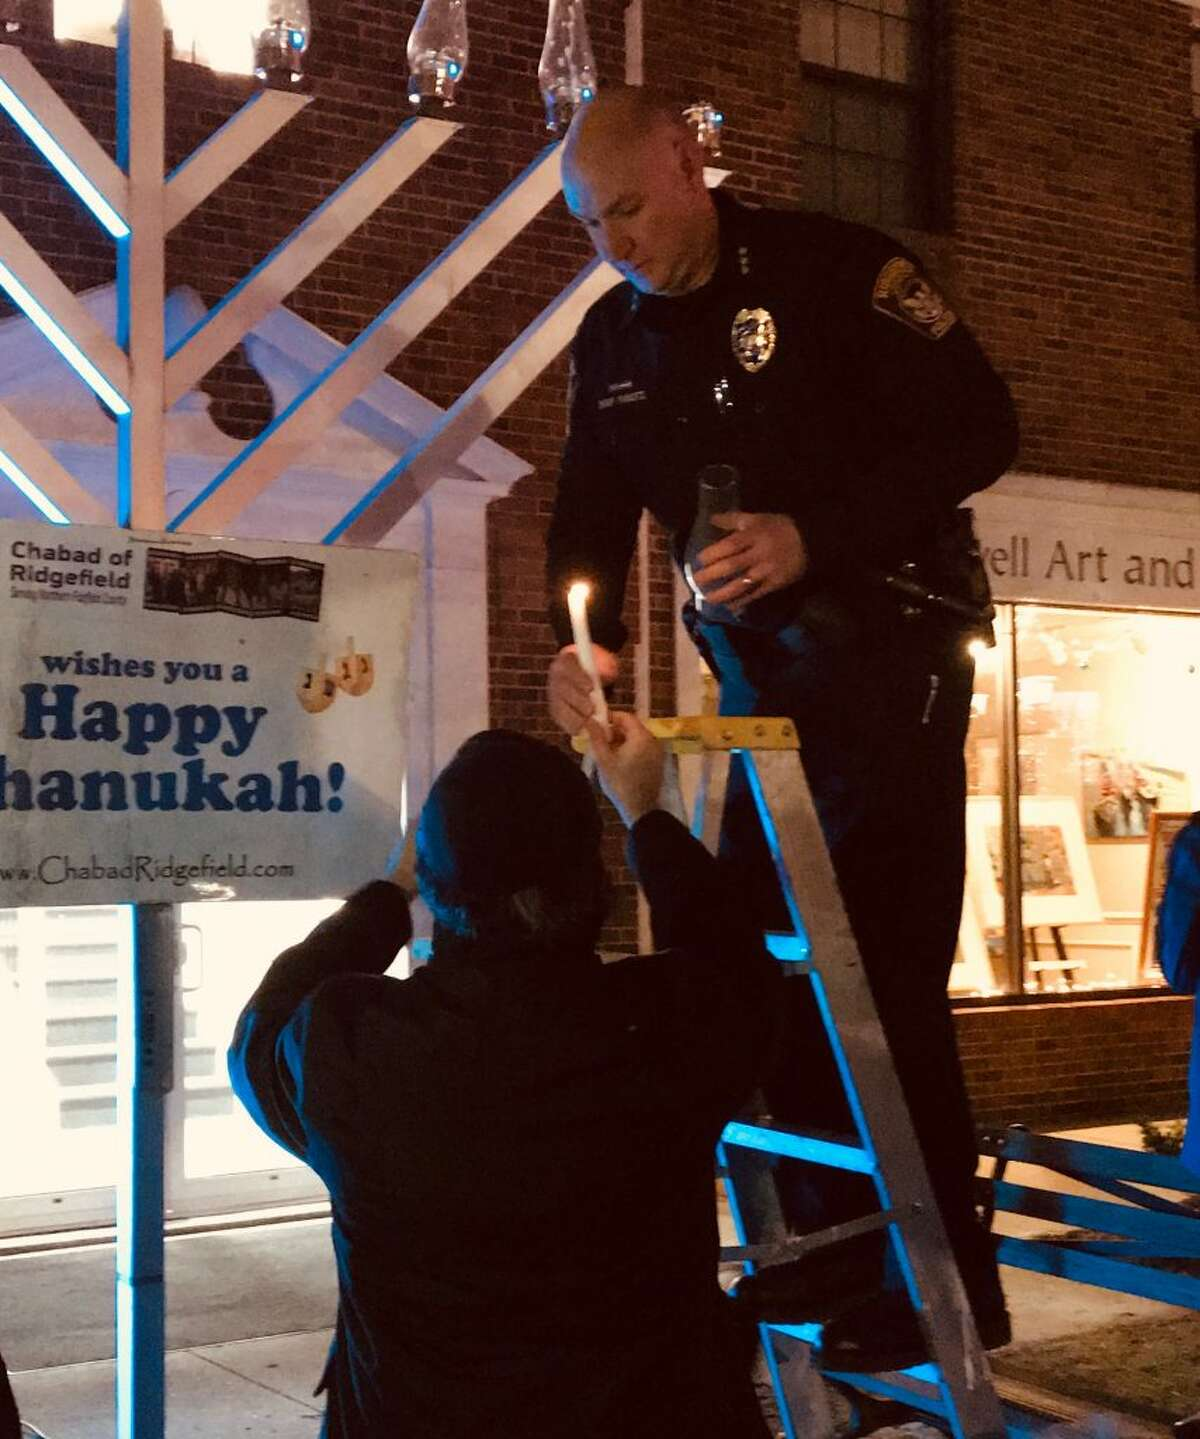 Police Chief Jeff Kreitz lights a candle during the Hanukah walk on Main Street on Dec. 7.